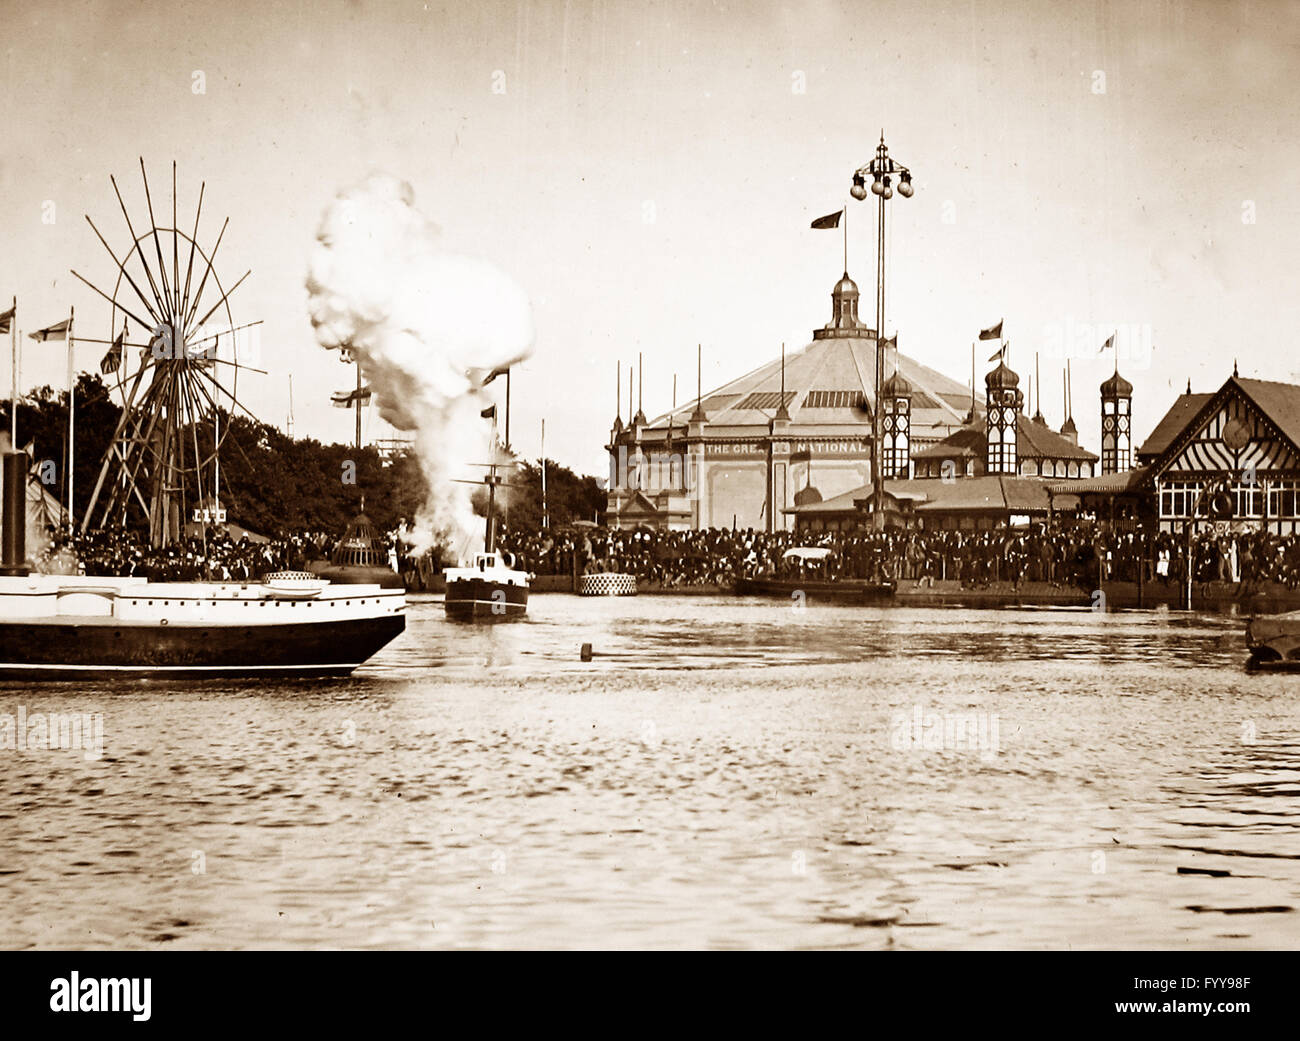 Royal Naval Exhibition 1891 - battleships in action - Stock Image